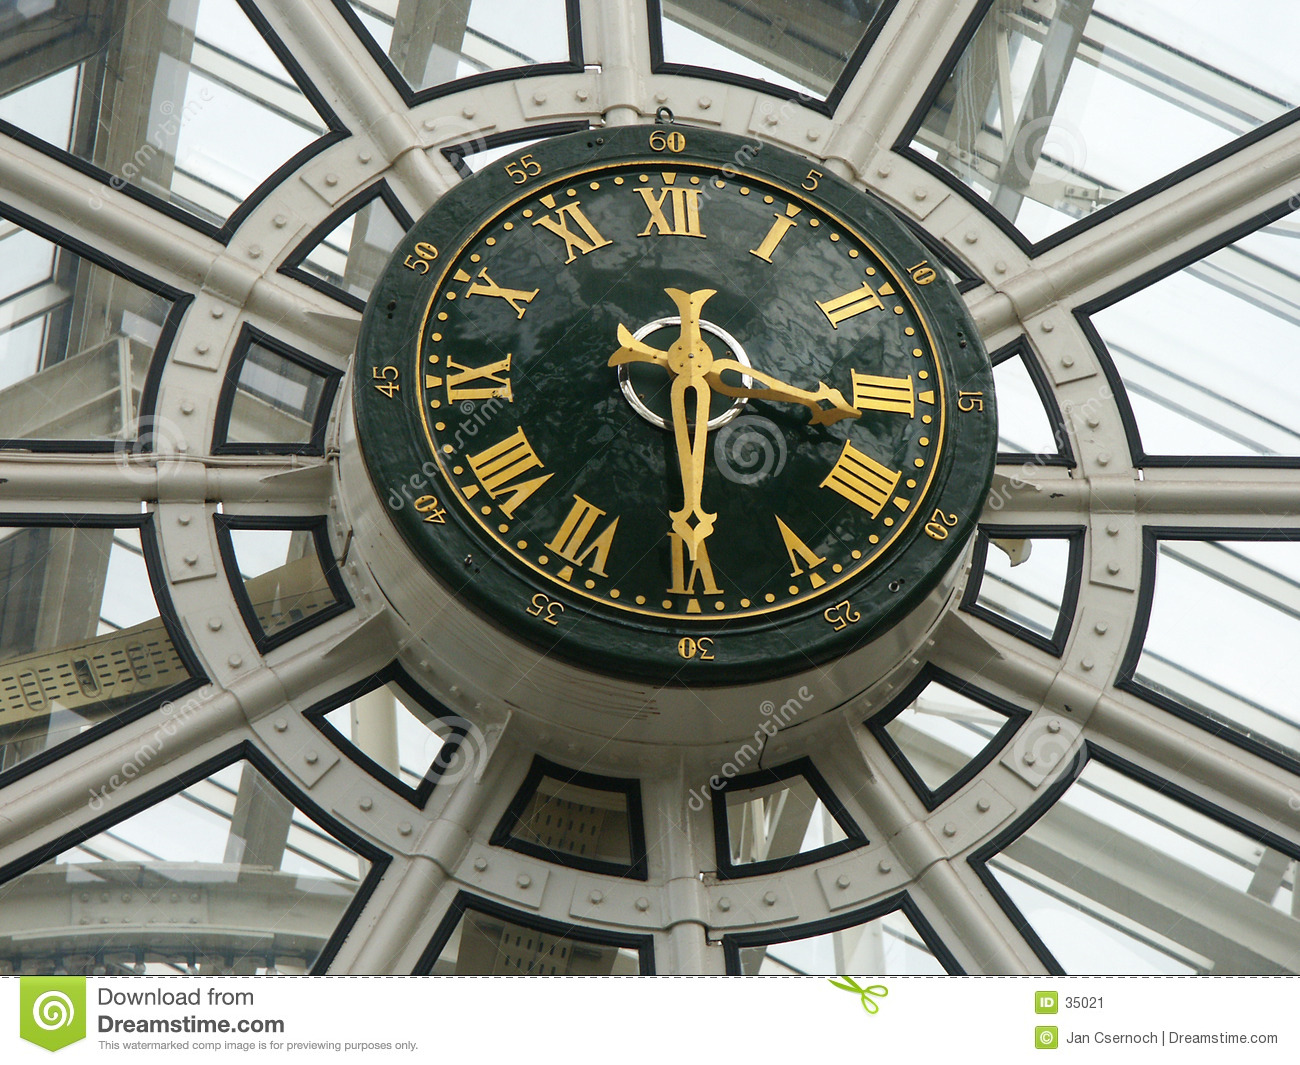 Clock galleriashopping